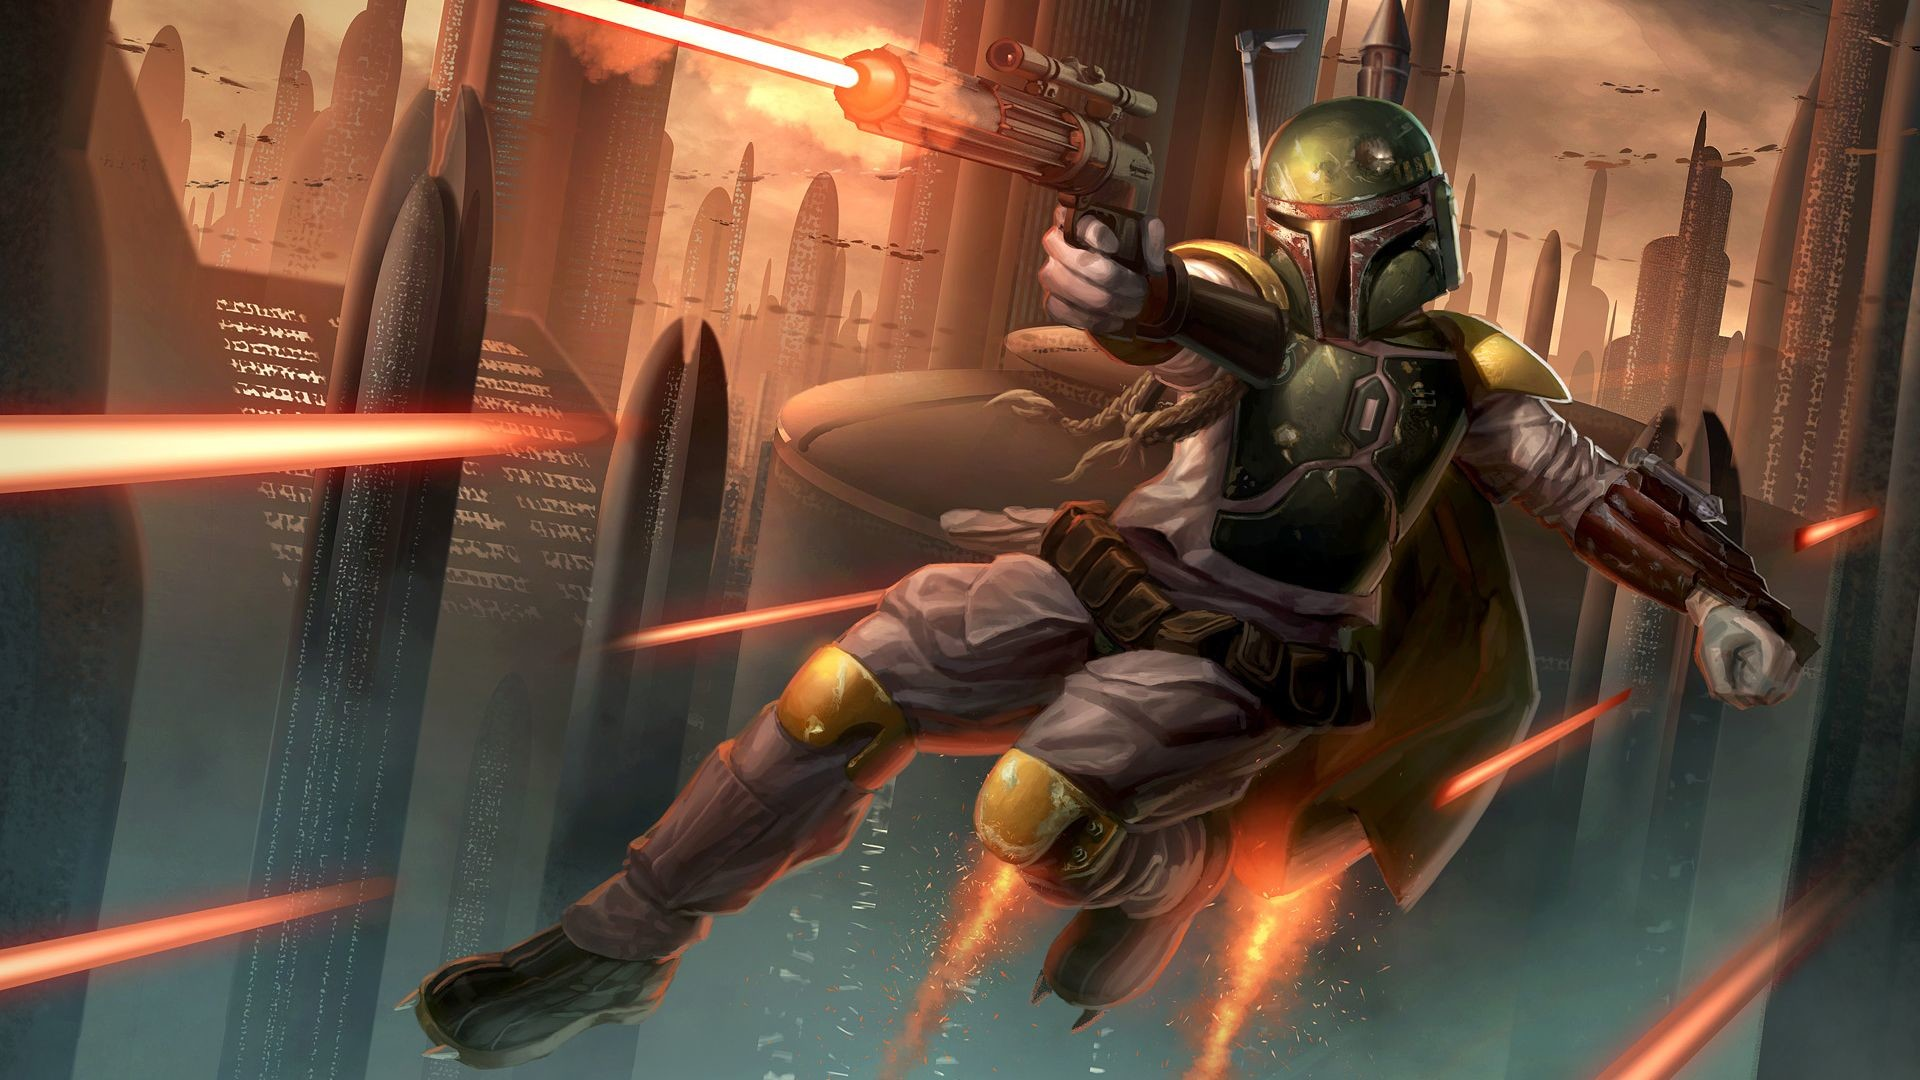 Star Wars Bounty Hunter Wallpaper 59 Pictures